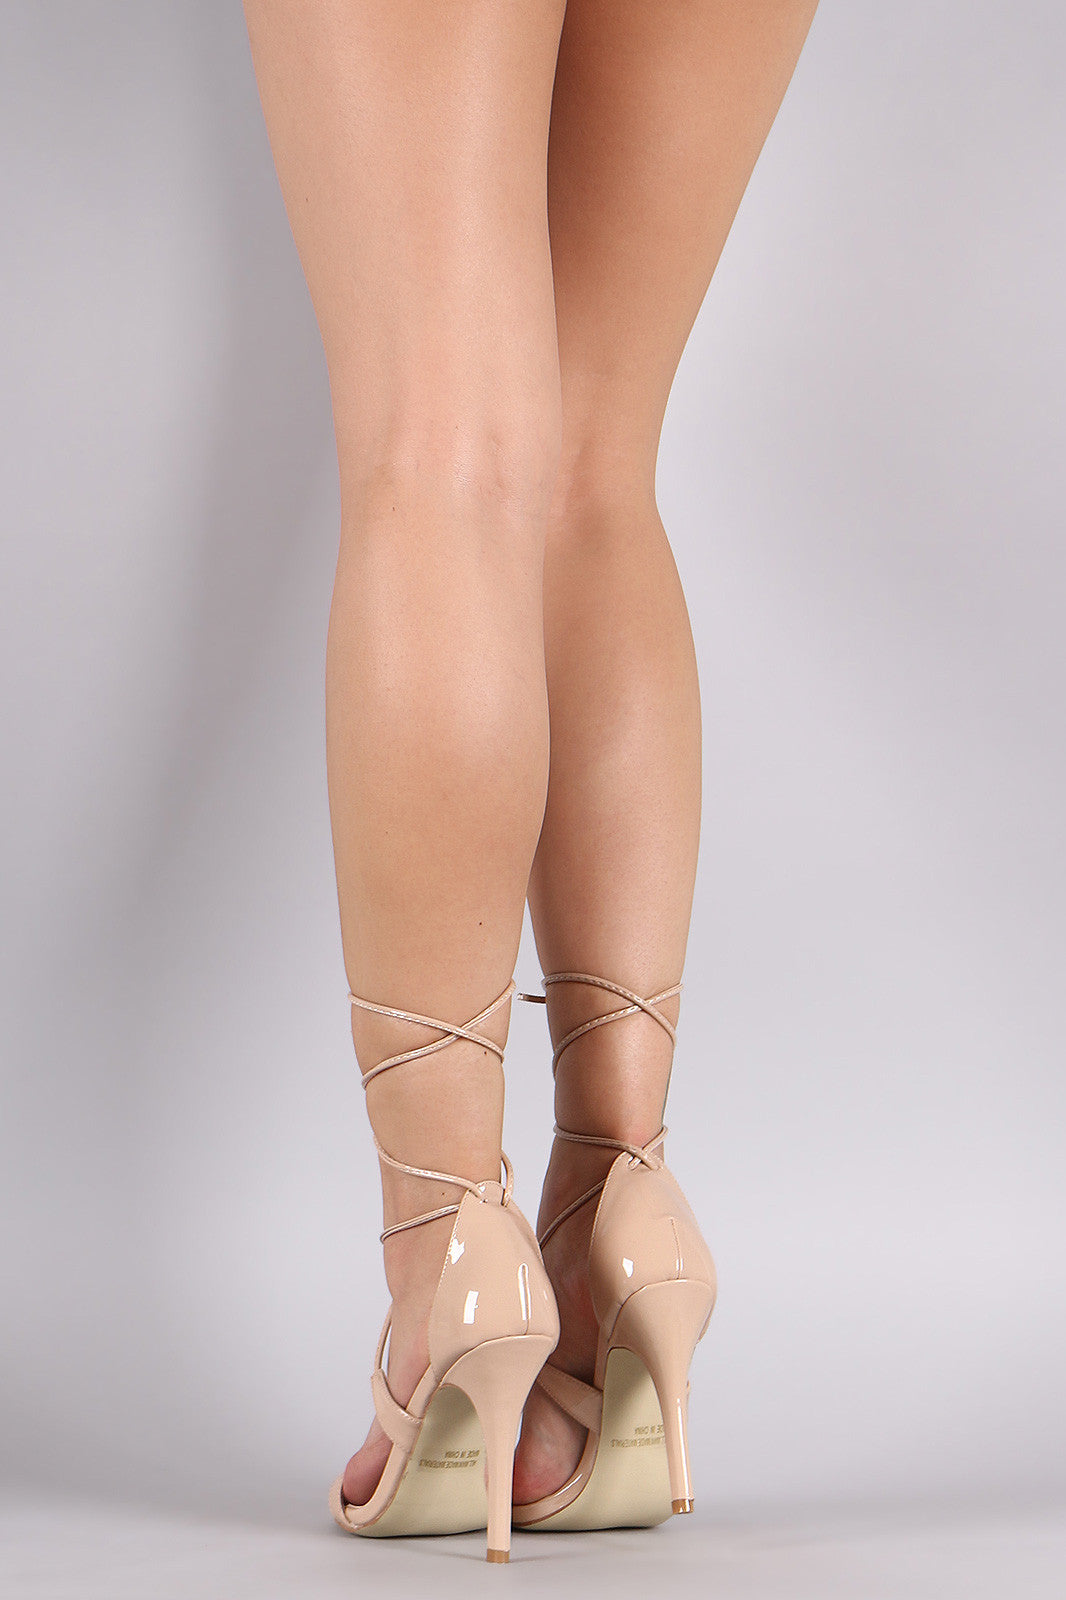 Patent Open Toe Lace-Up Stiletto Heel - Thick 'N' Curvy Shop - 5